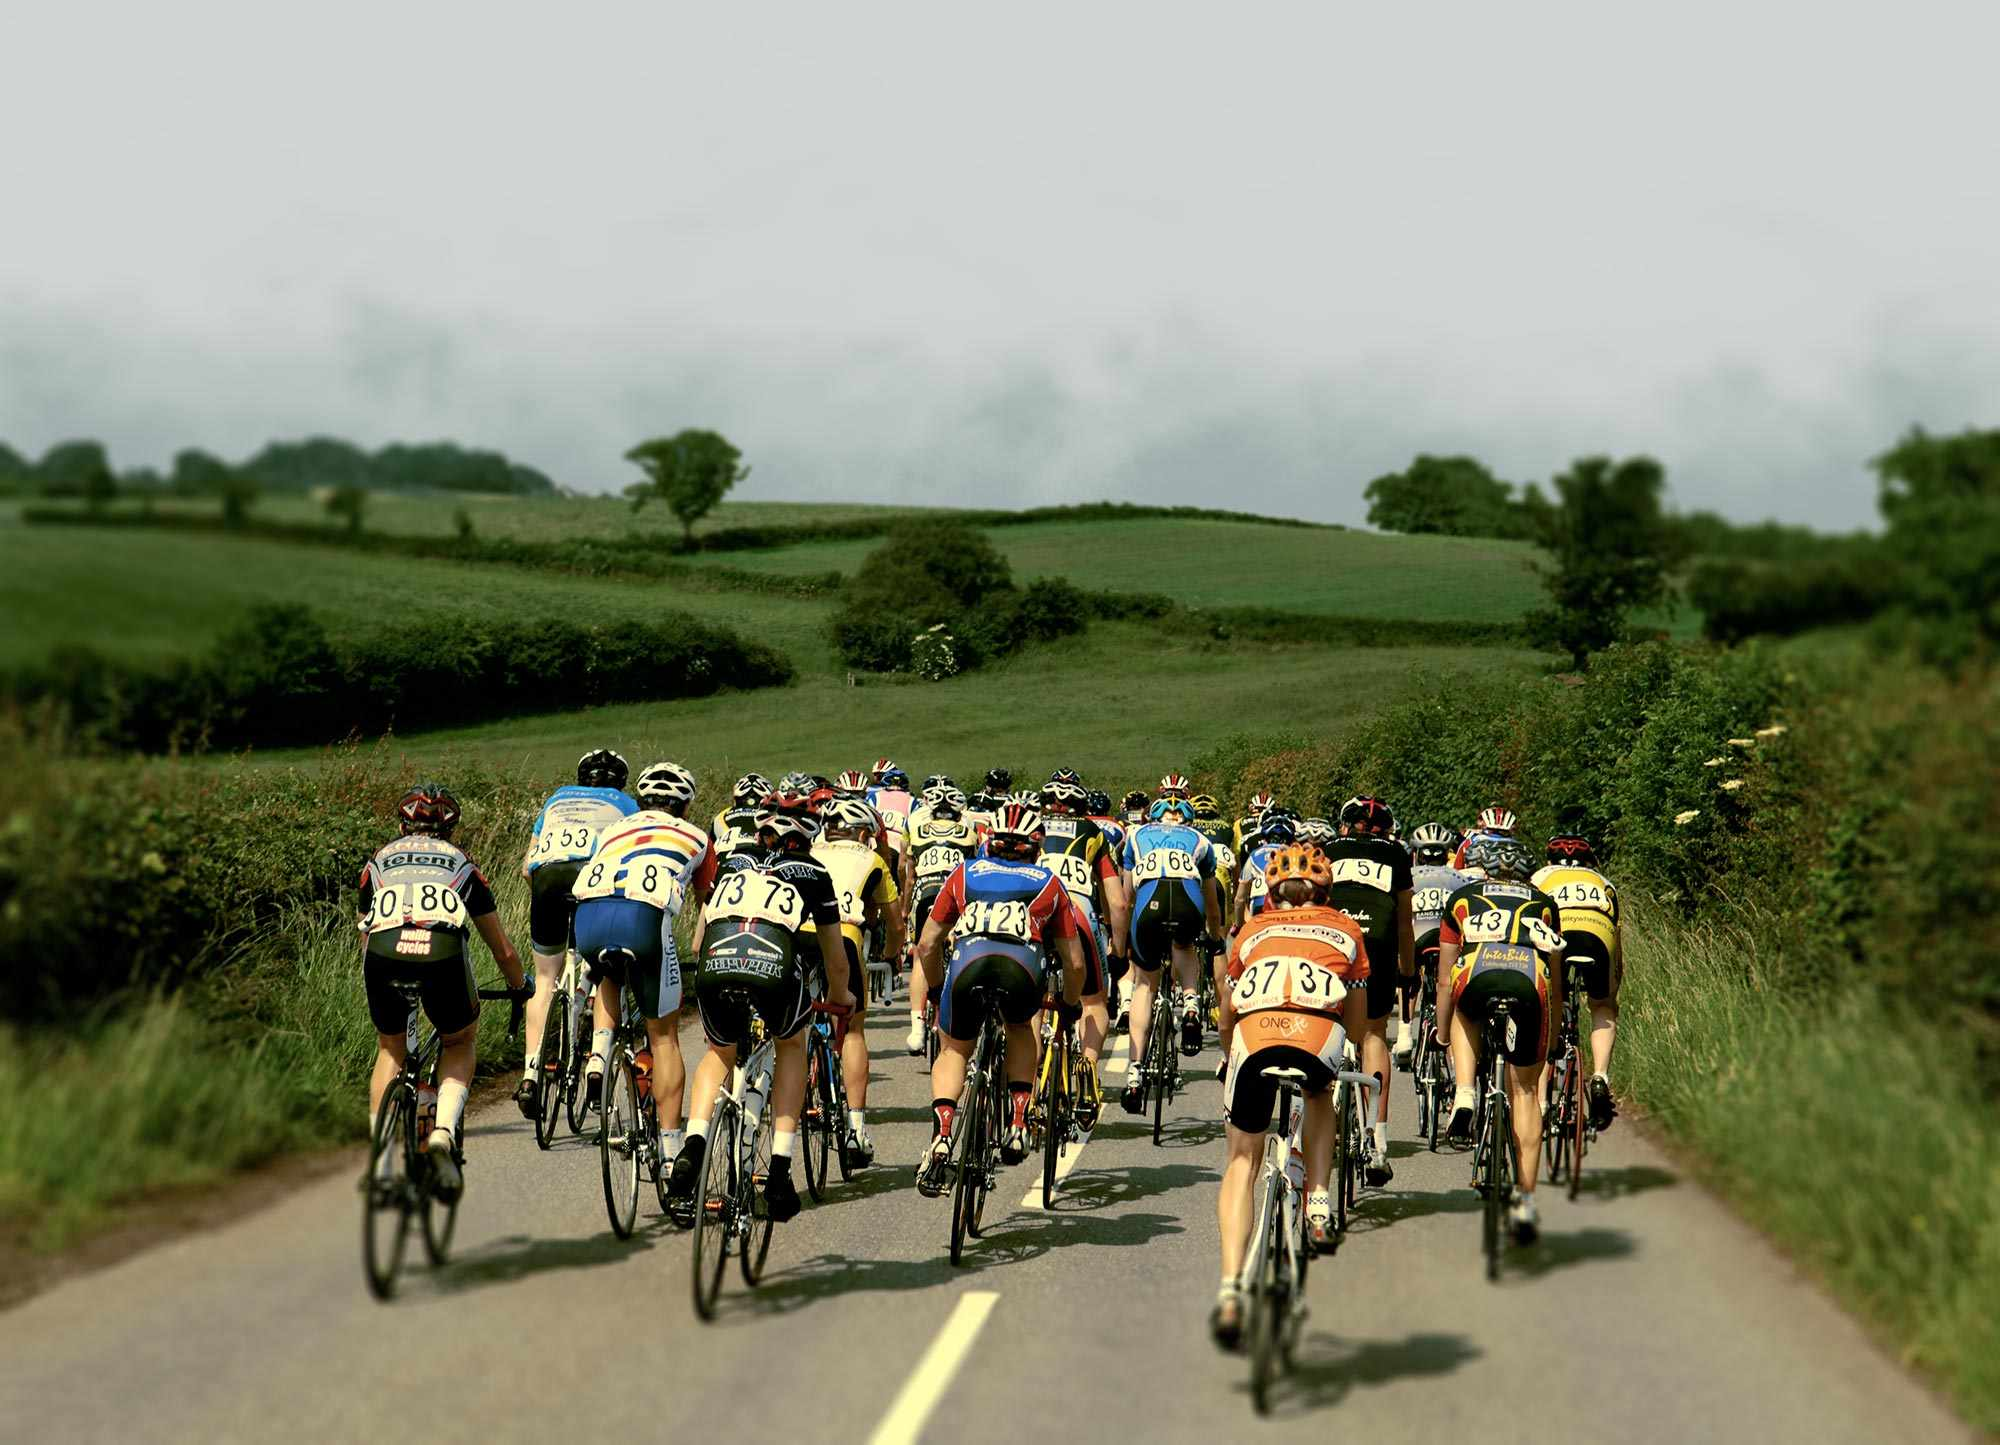 Riders taking part in the National Road Race Championships